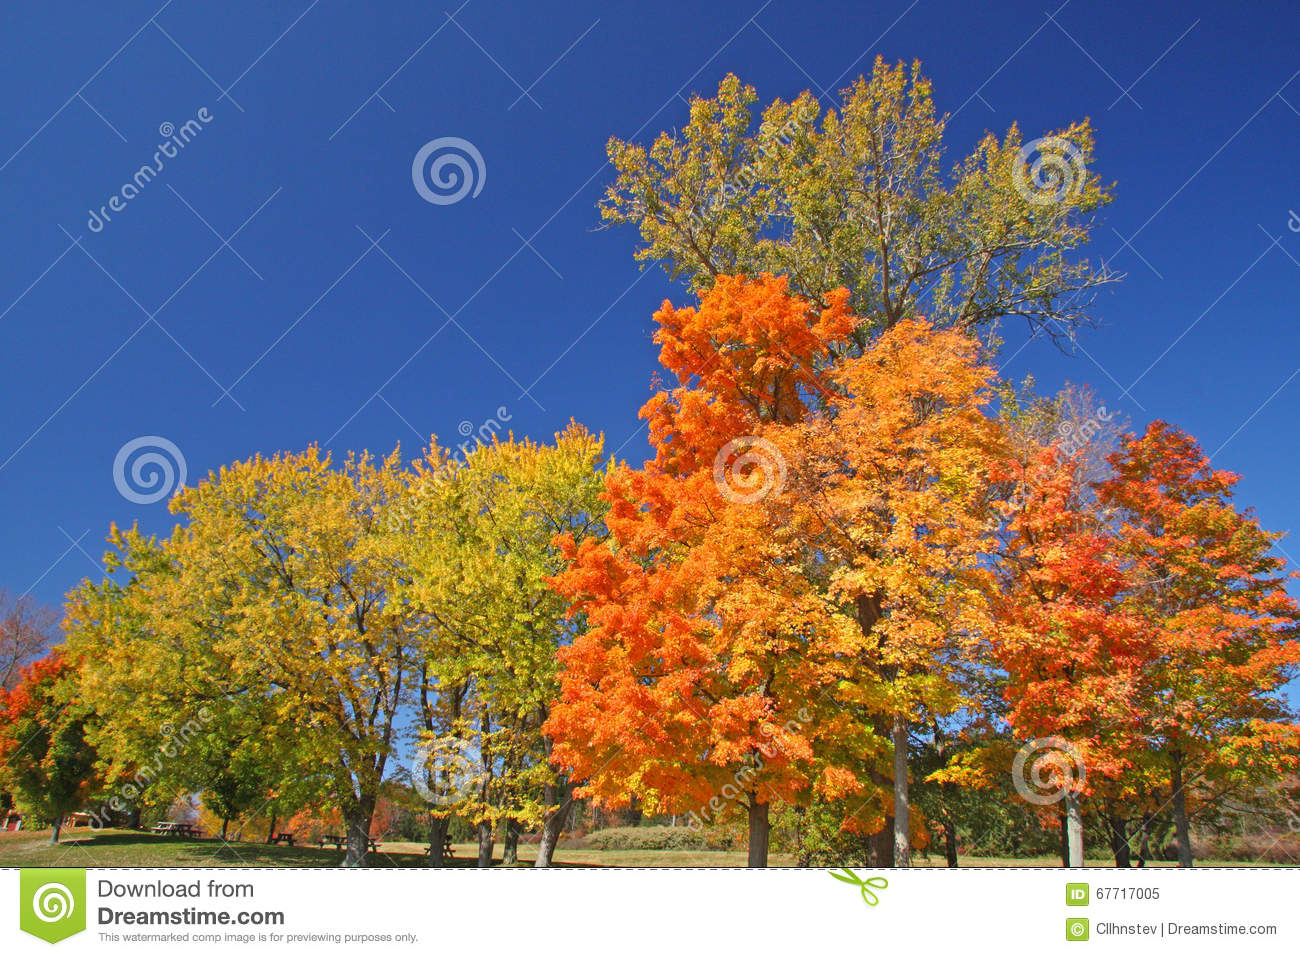 Sugar Maple trees in fall